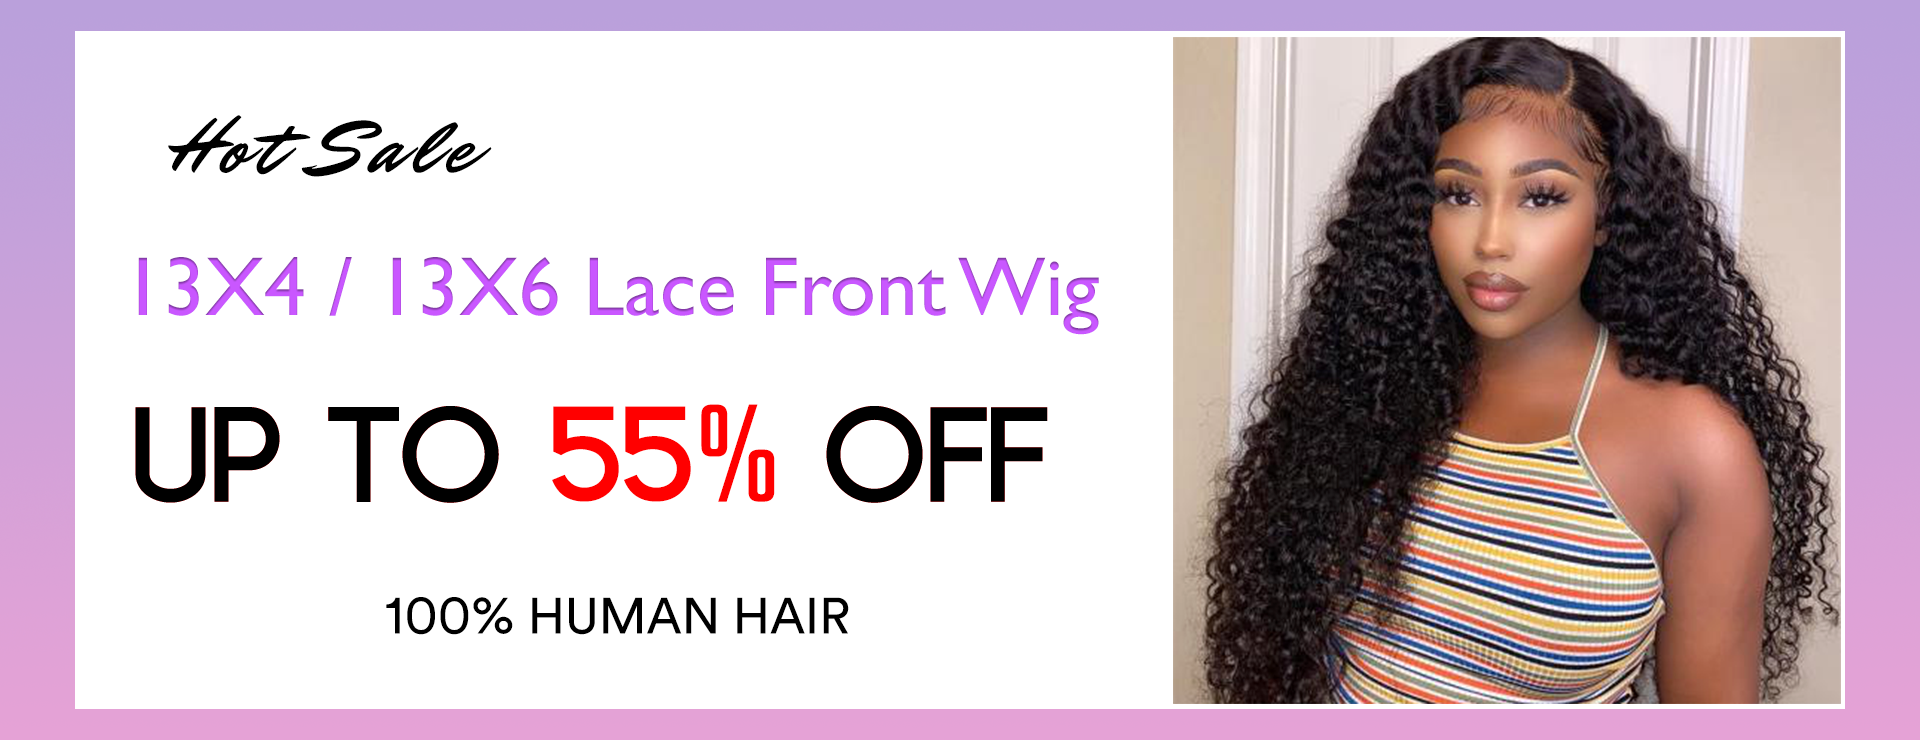 lace front wig hot sale